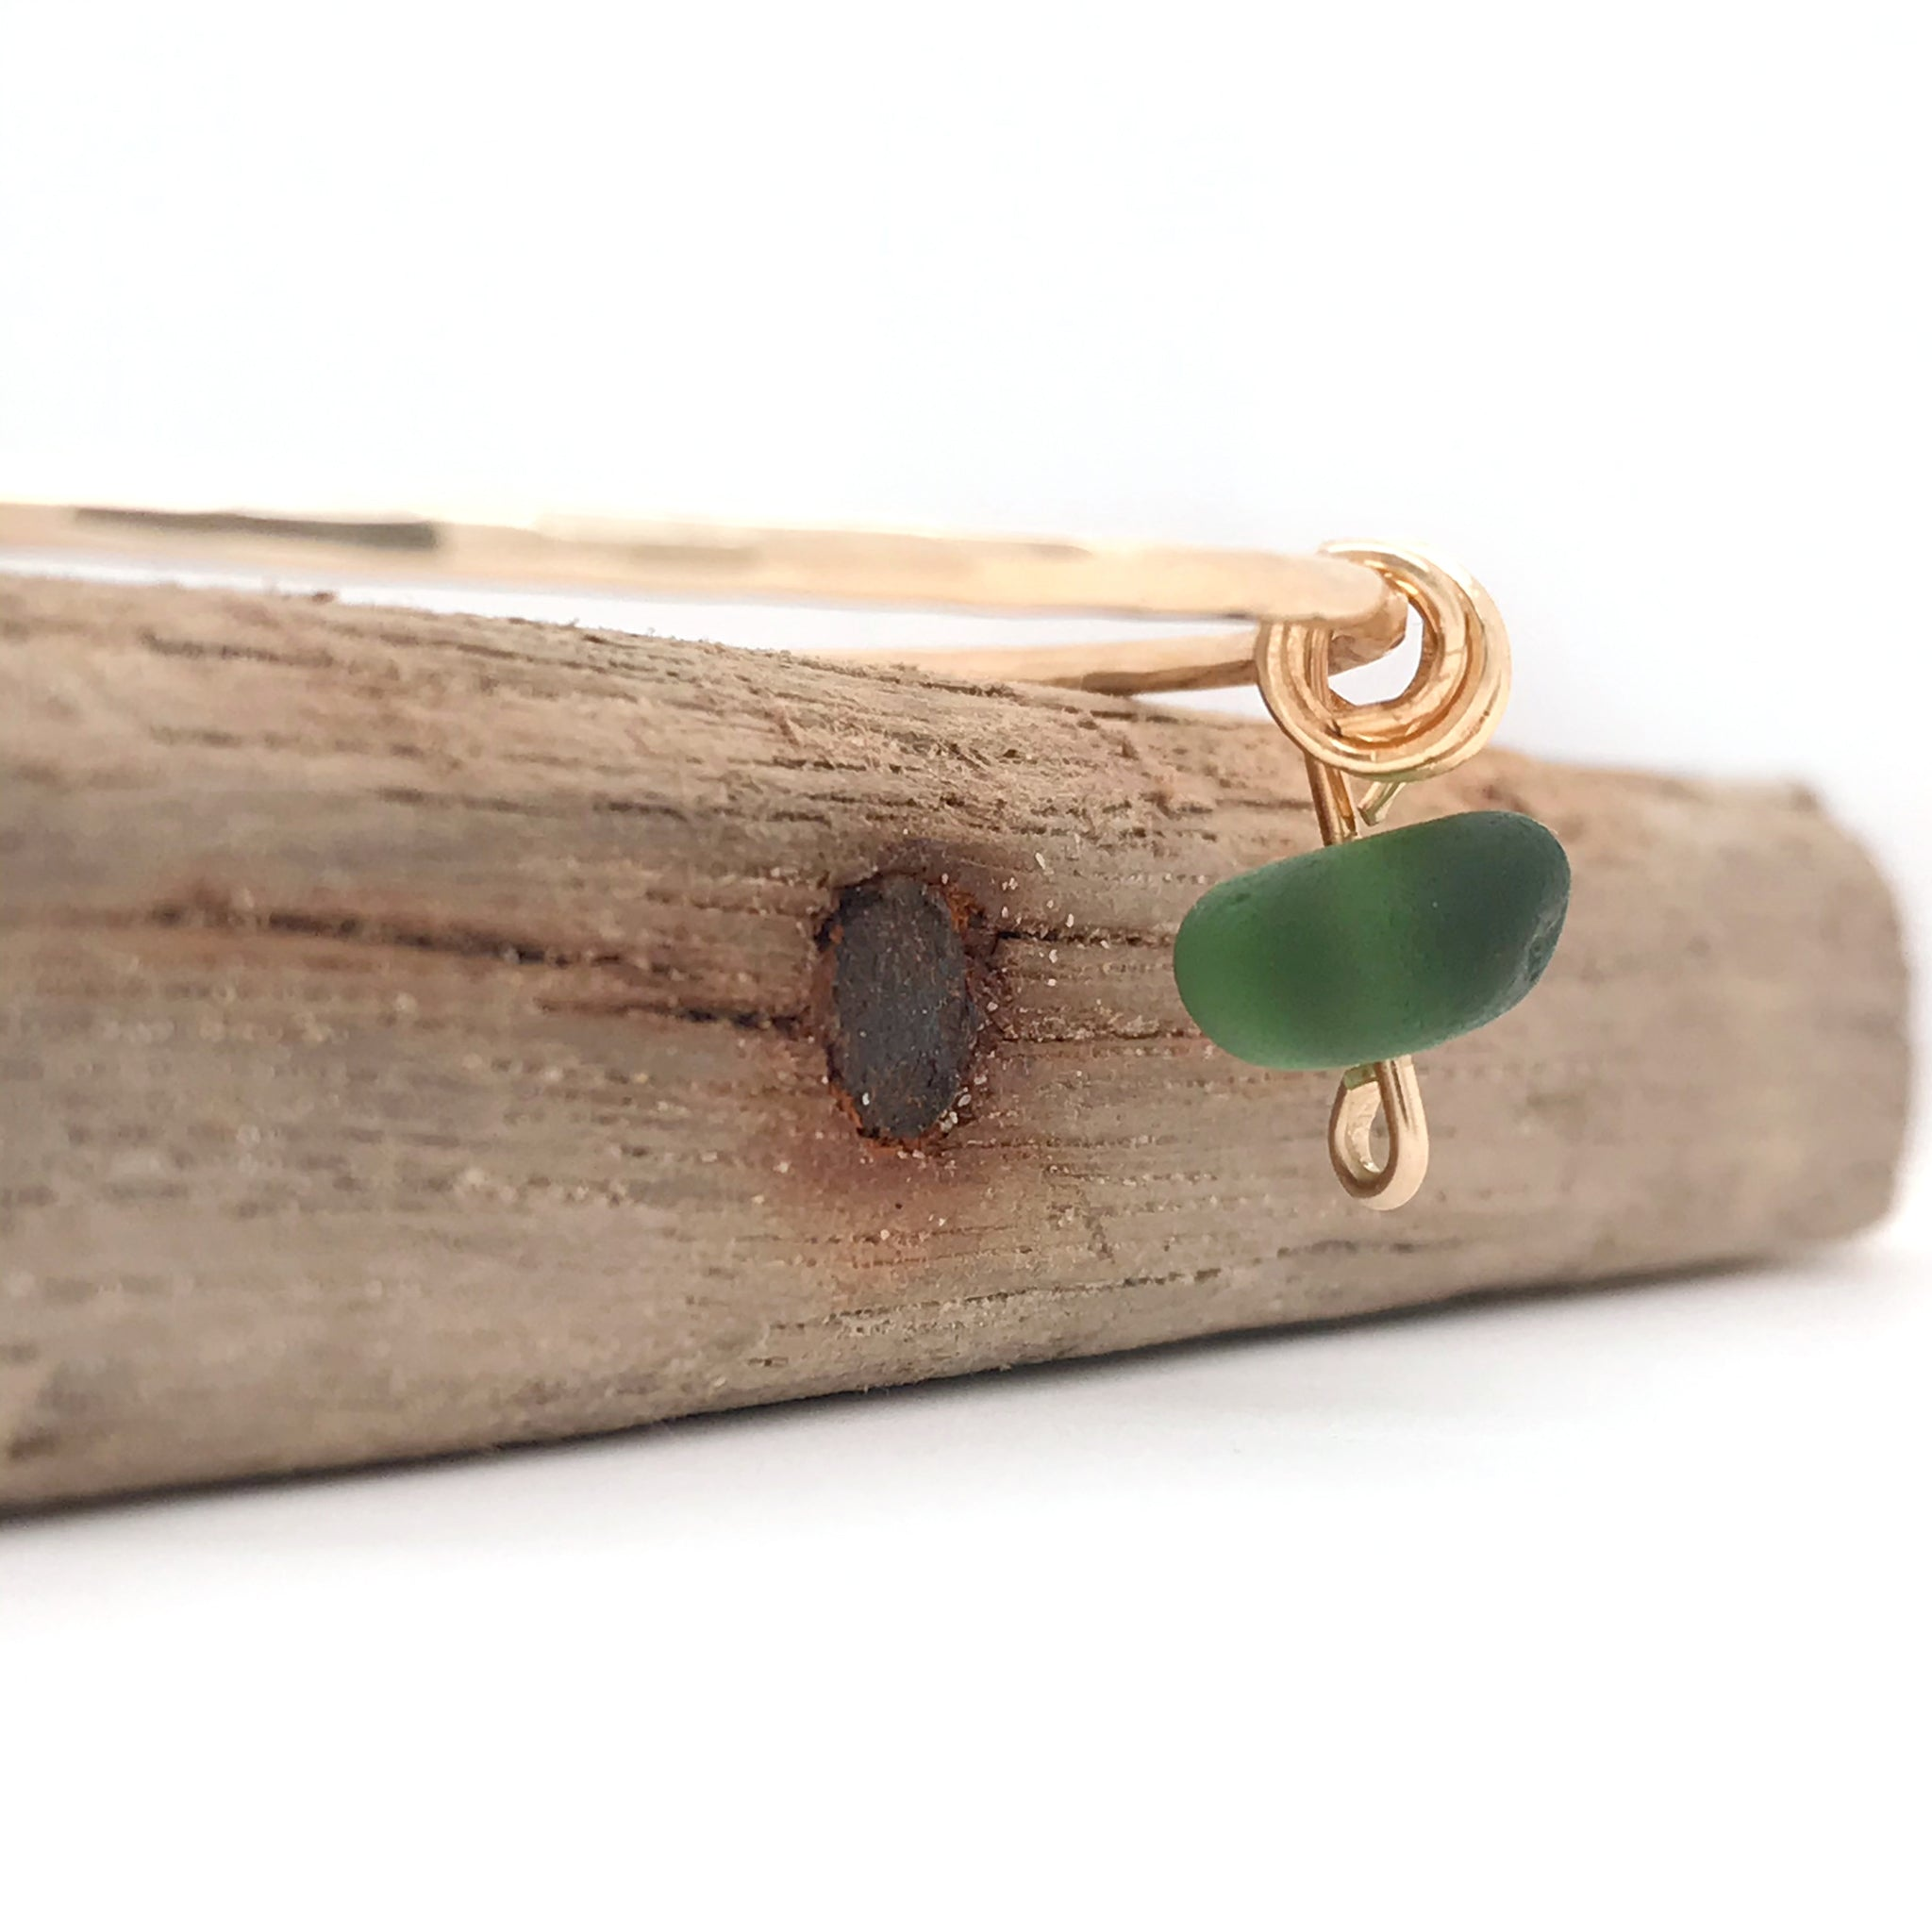 Green Seaglass Bangle Gold  - kriket broadhurst handcrafted jewellery